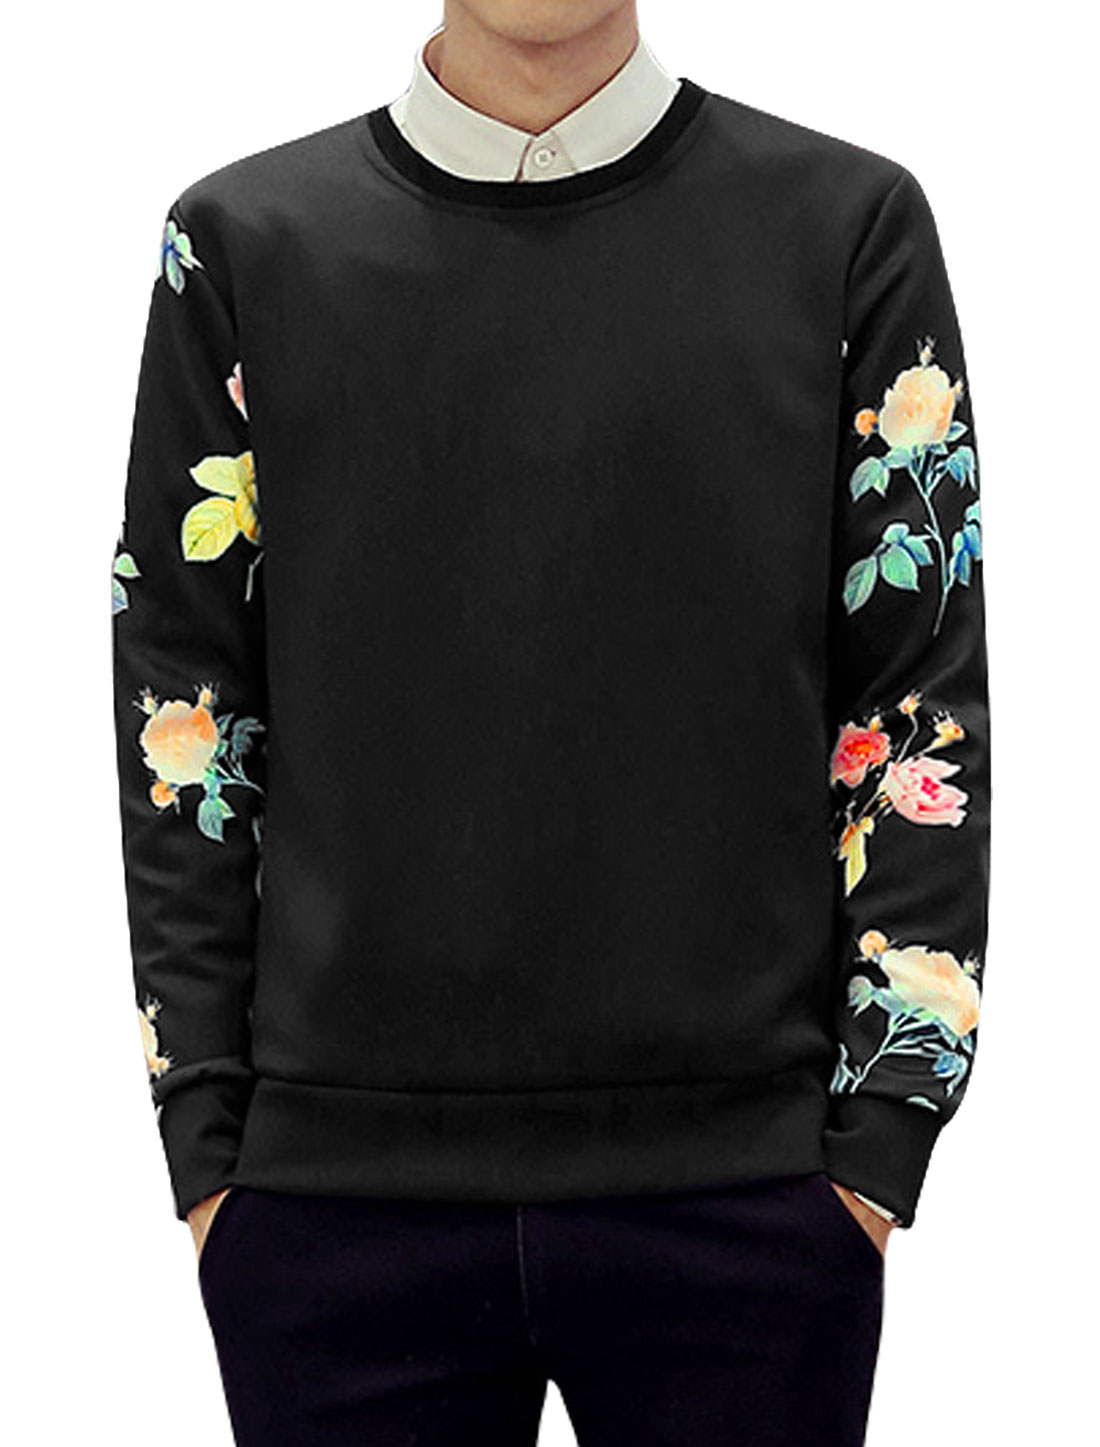 Men Slim Fit Crew Neck Long Sleeves Flower Sweatshirt Black M